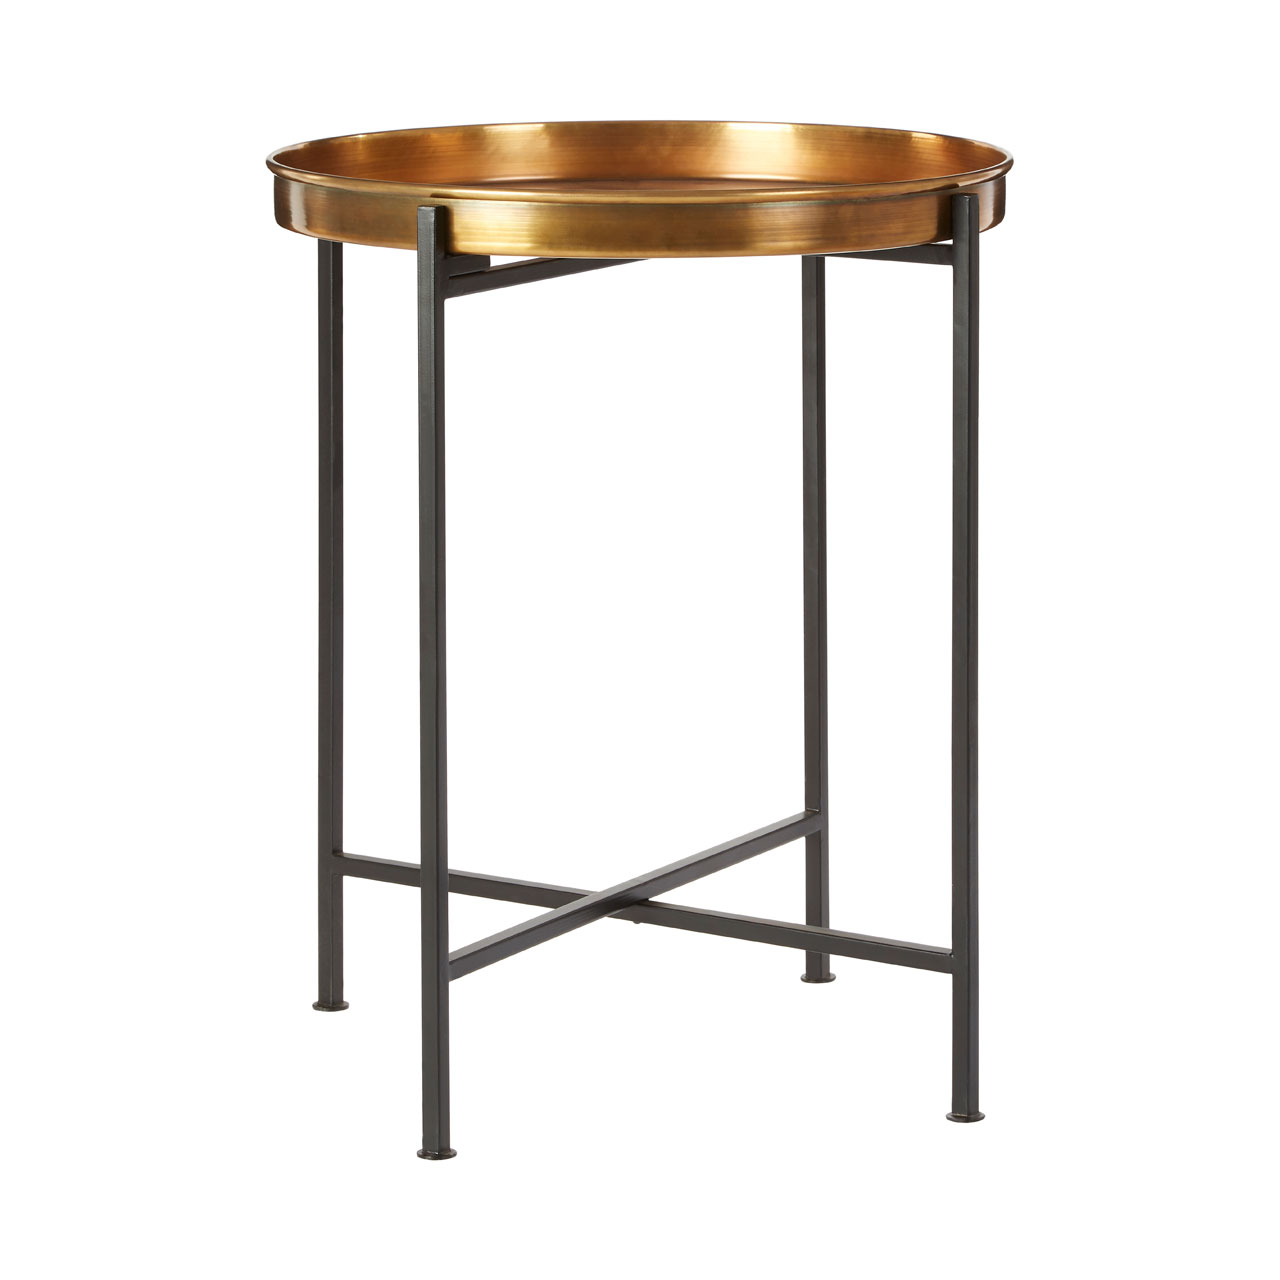 Hege Side Coffee Table Black Brass Small Living Room Home